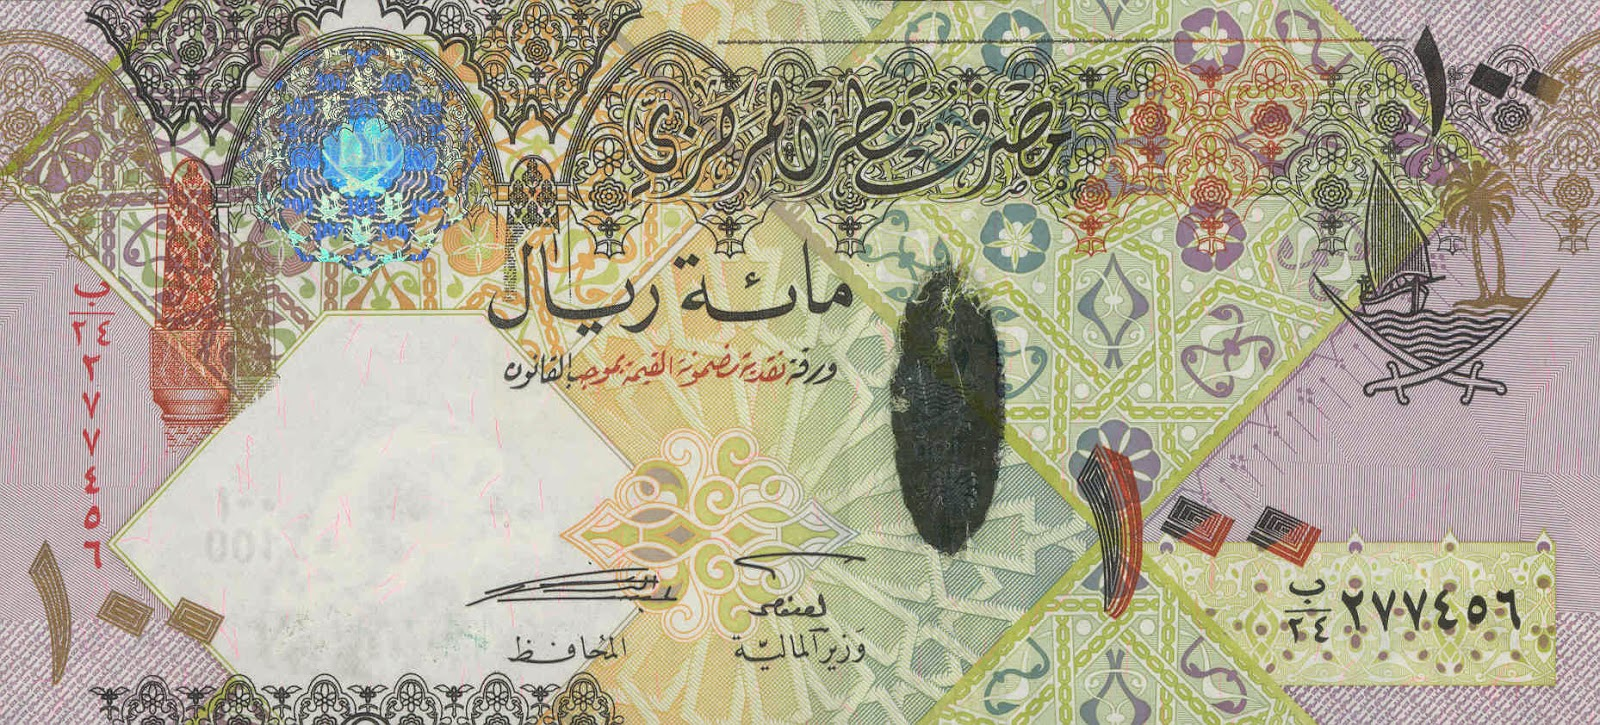 http://hybridbanknotes.blogspot.com/2014/04/qatar-100-and-500-riyals-2007-double.html